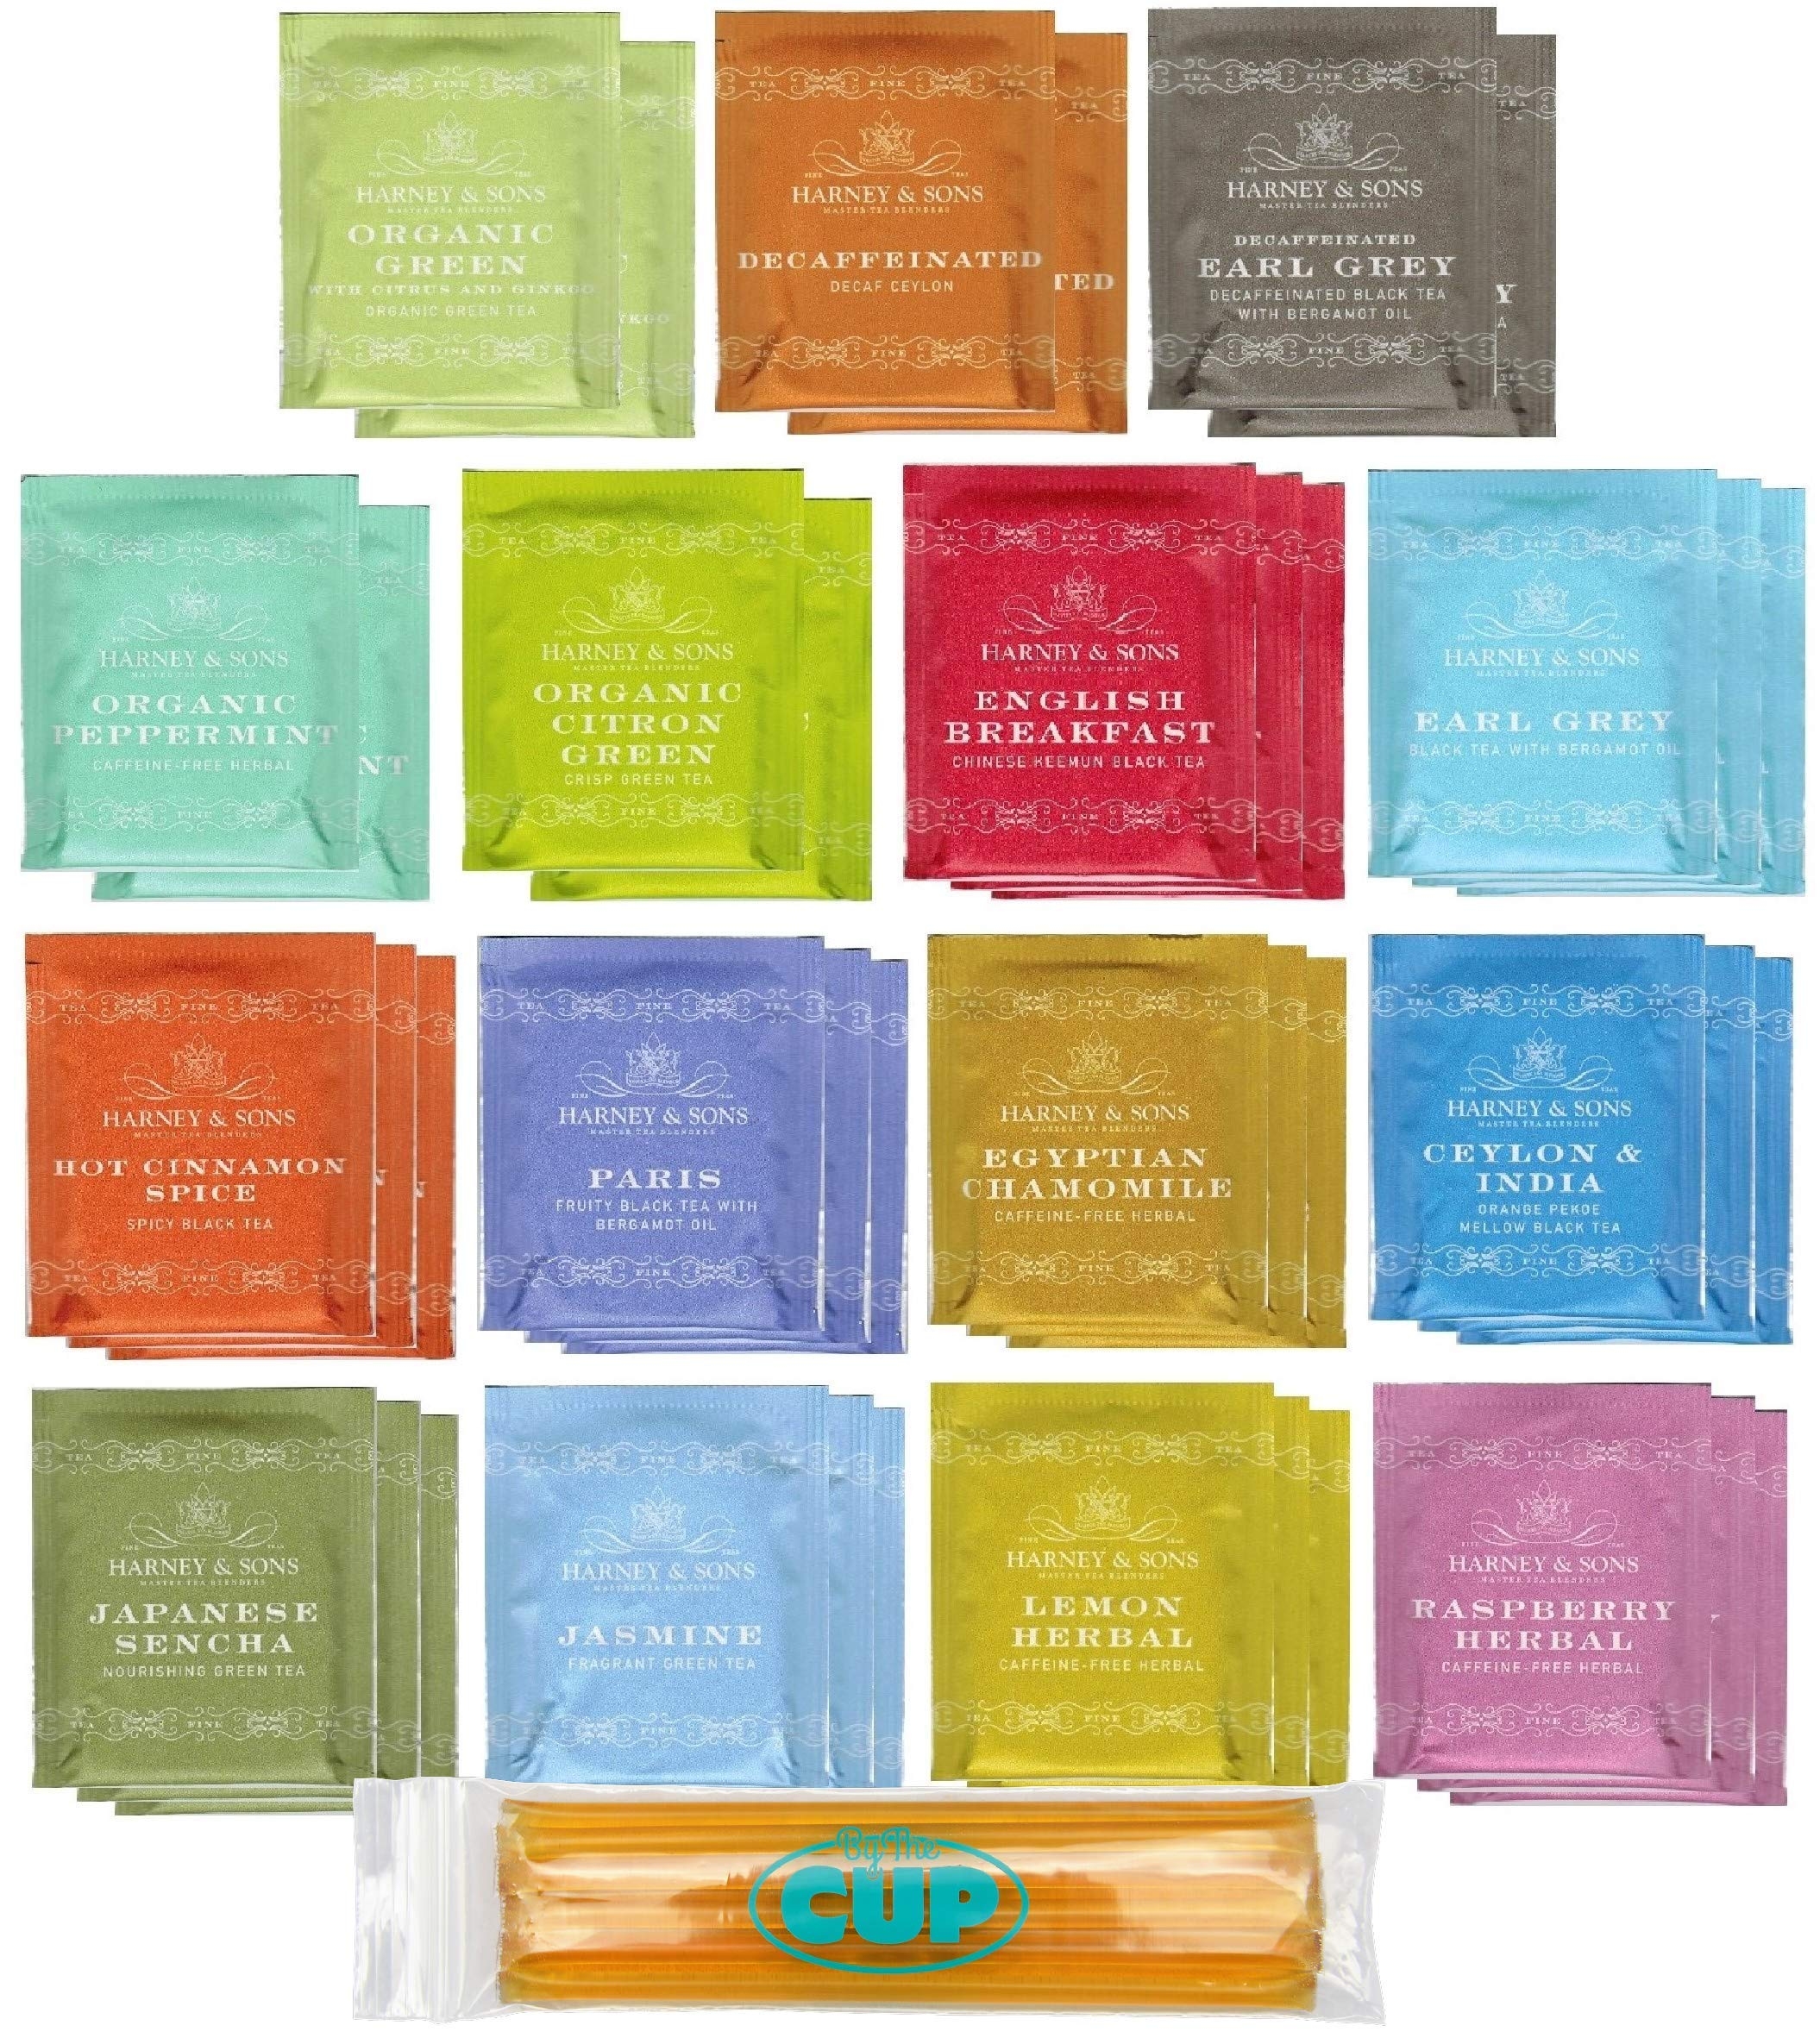 Harney & Sons Tea Bag Sampler 40 Ct with By The Cup Honey Sticks by By The Cup